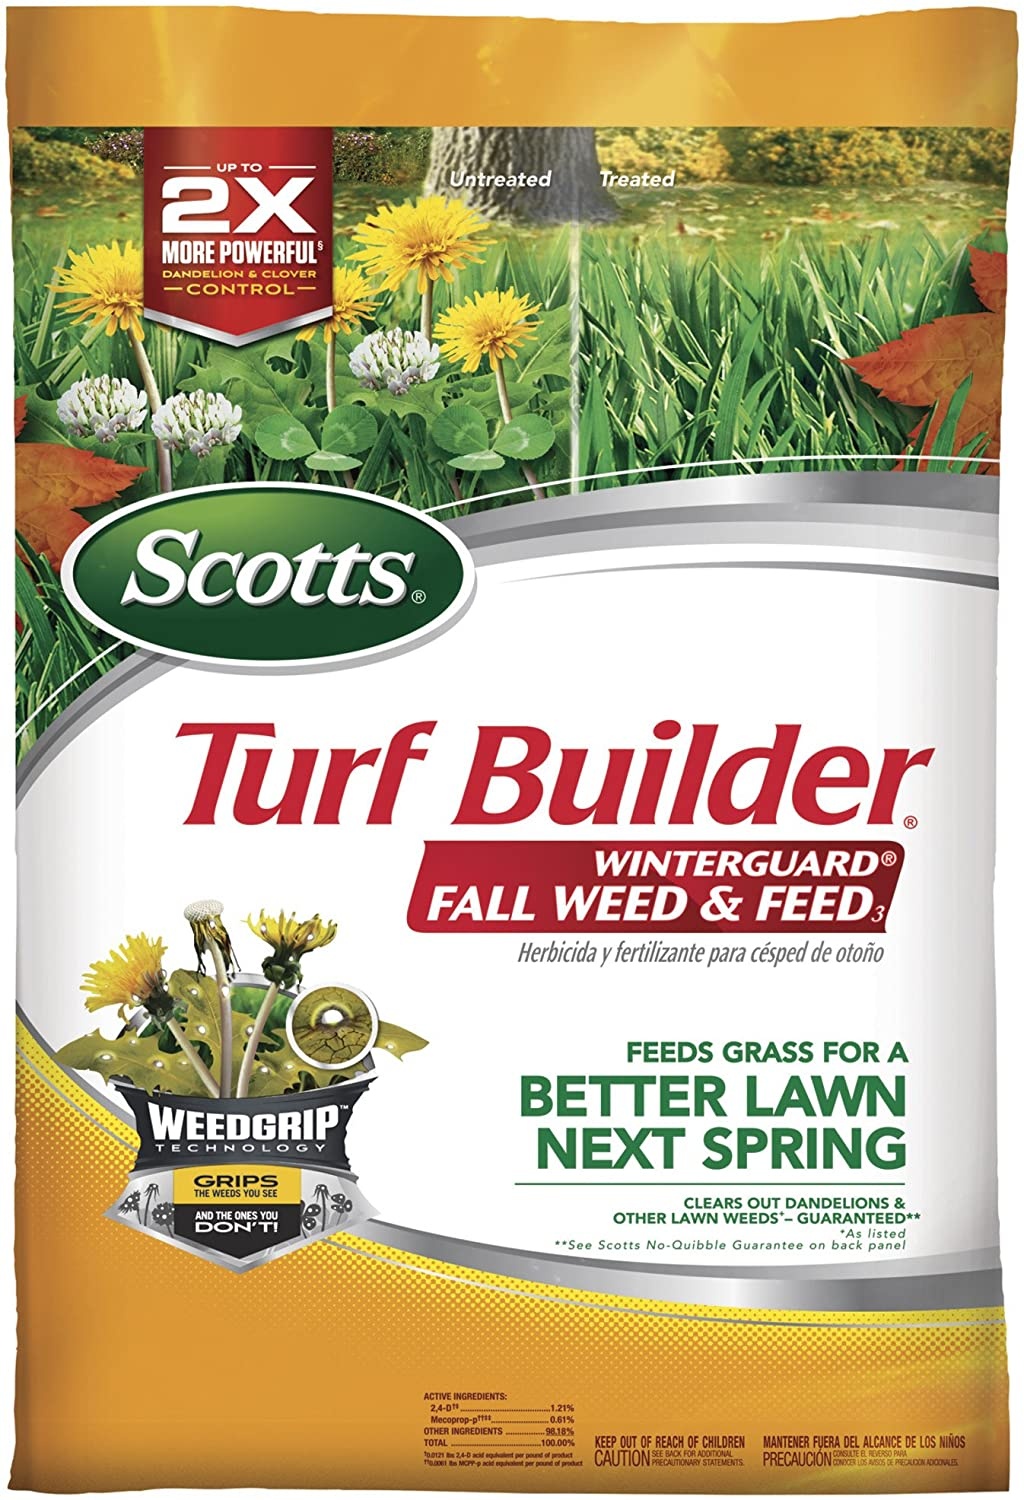 Scotts Turf Builder Winterguard Fall Weed & Feed3, 15,000 sq ft, 42.87 lbs